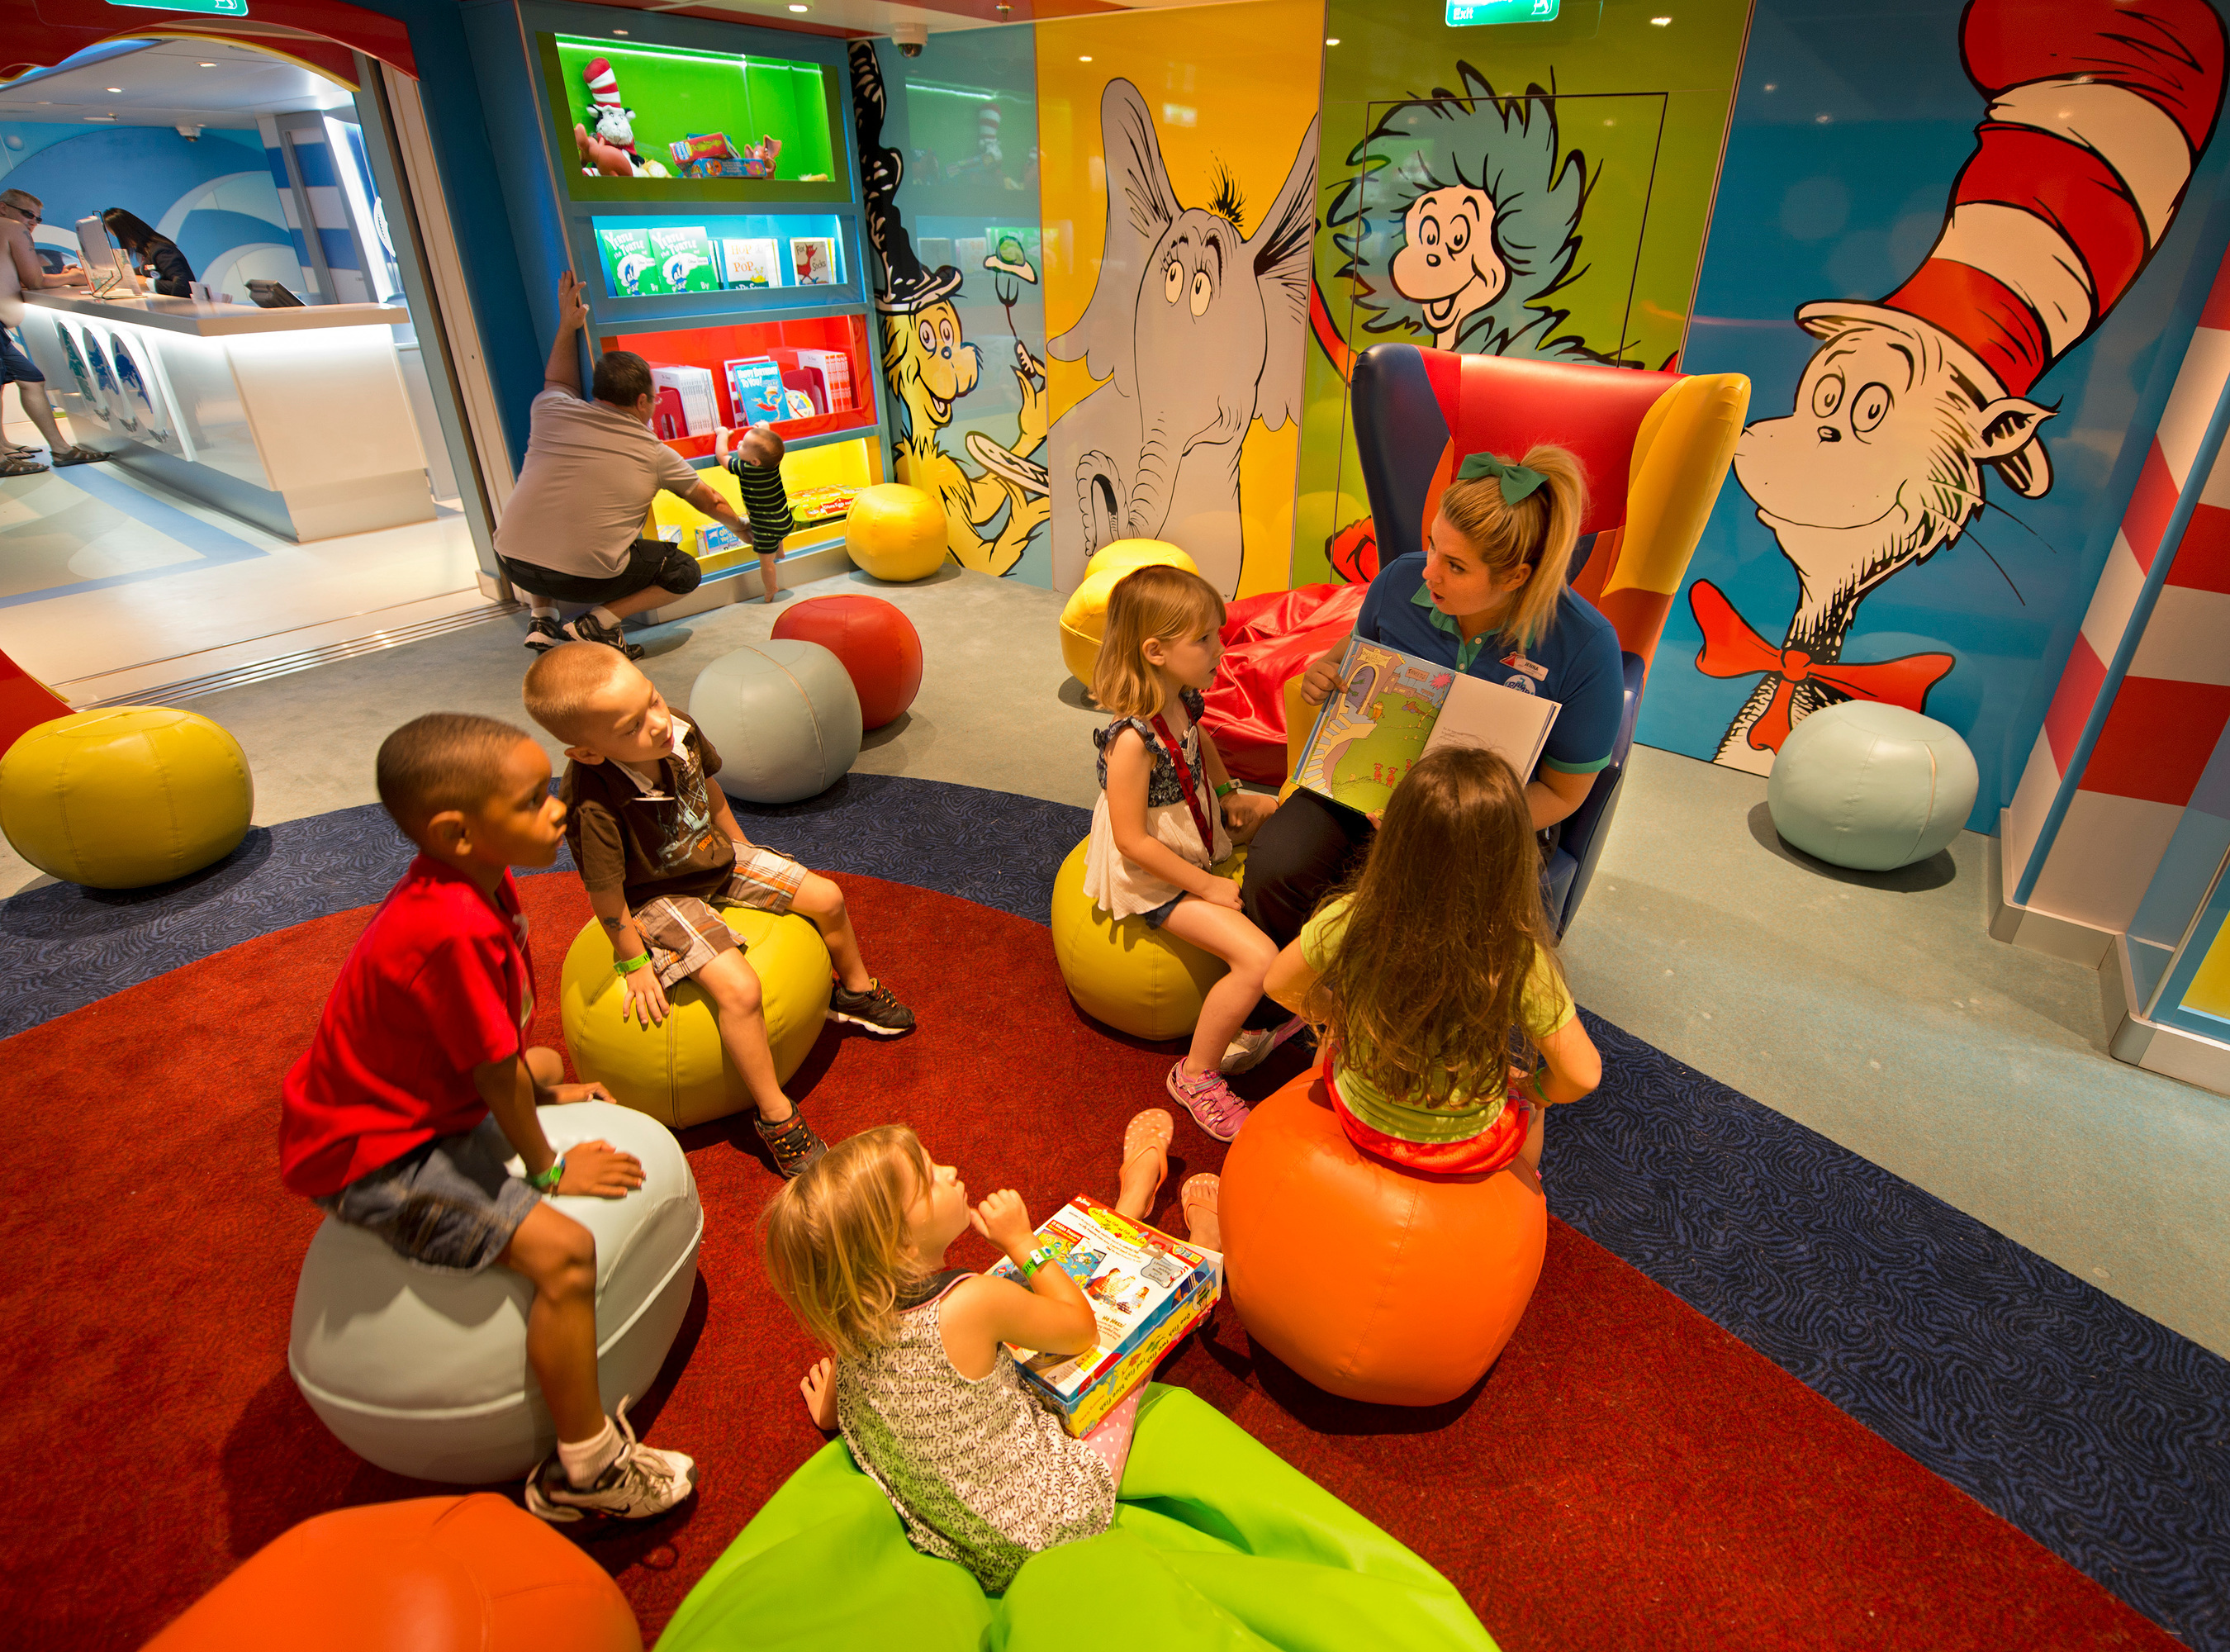 Dr. Seuss Bookville Reading Venue & Others to Be Added to Carnival's Family-Friendly Offerings